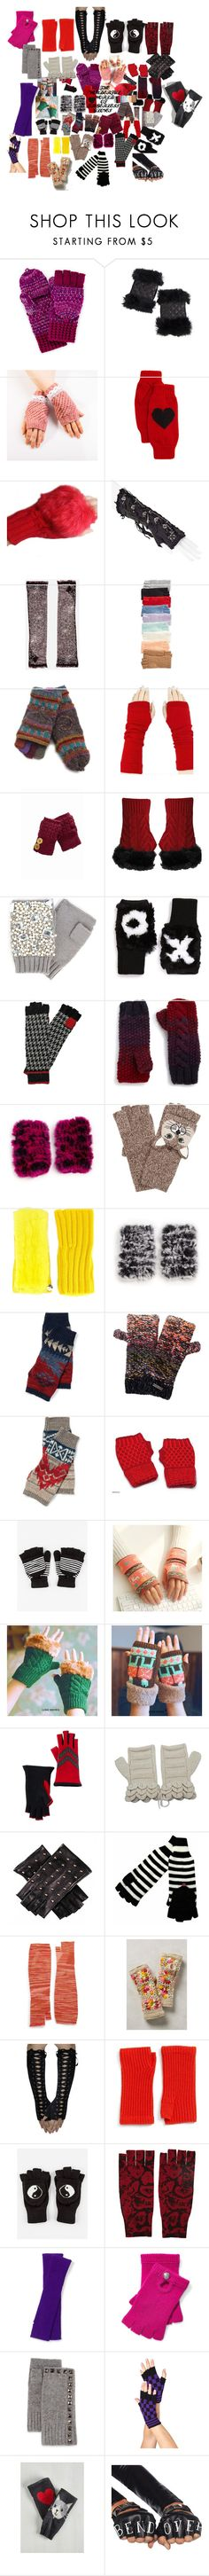 """""""THE WONDERFUL WORLD OF FINGERLESS GLOVES"""" by marius19143 ❤ liked on Polyvore featuring Mixit, Overland Sheepskin Co., Rosie Sugden, KD2024, ASOS, BCBGeneration, Lost Horizons, San Diego Hat Co., Jocelyn and Genie by Eugenia Kim"""